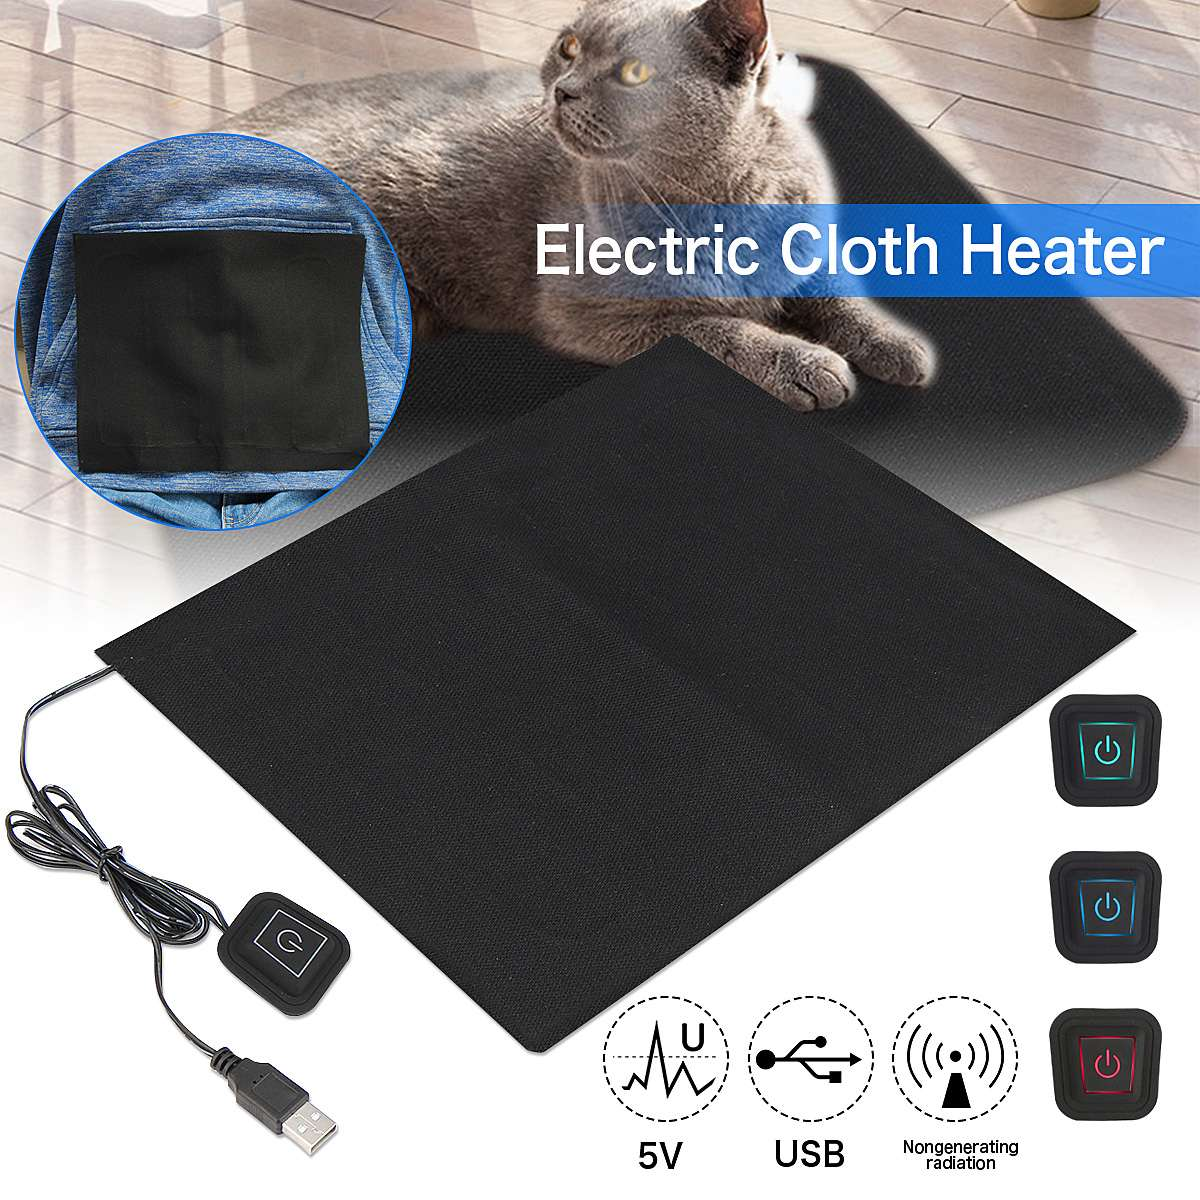 5V USB Electric Clothes Heater Sheet, Winter Heated For Cloth Waist Foot Insoles, Women Men Keep Warm Hand Warmer Heating Tablet electric heating heated down vest for skiing hiking camping winter men vest keep body warm for women and men with batteries